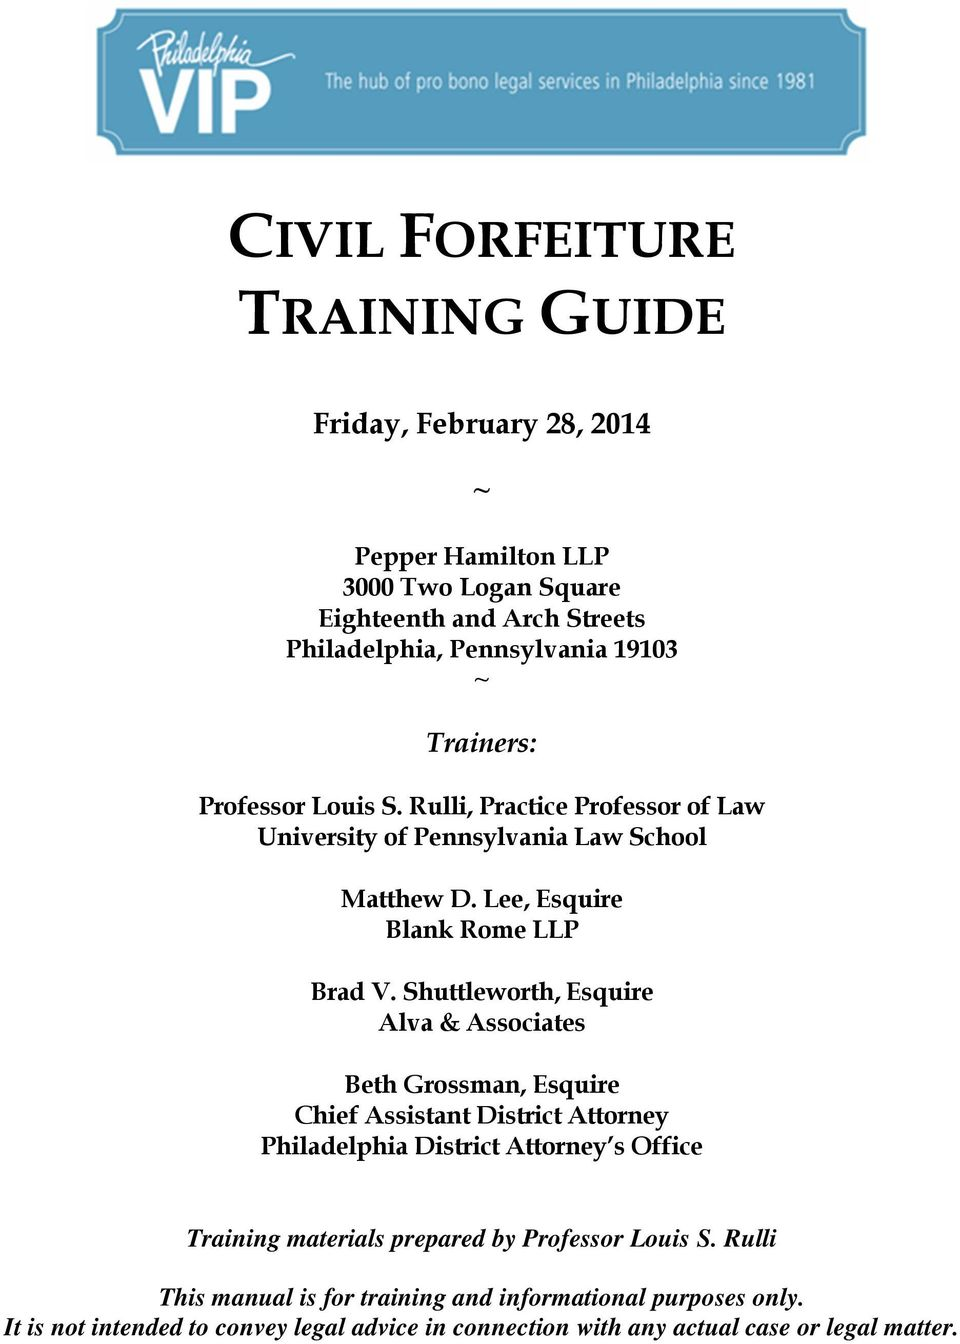 a introduction of forfeiture The forfeiture funds of the justice and treasury department—the largest federal forfeiture funds—together took in nearly $29 billion from 2001 to 2014 law enforcement overwhelmingly favors civil forfeiture to criminal forfeiture—from 1997 to 2013, 87 percent of department of justice forfeitures were civil.